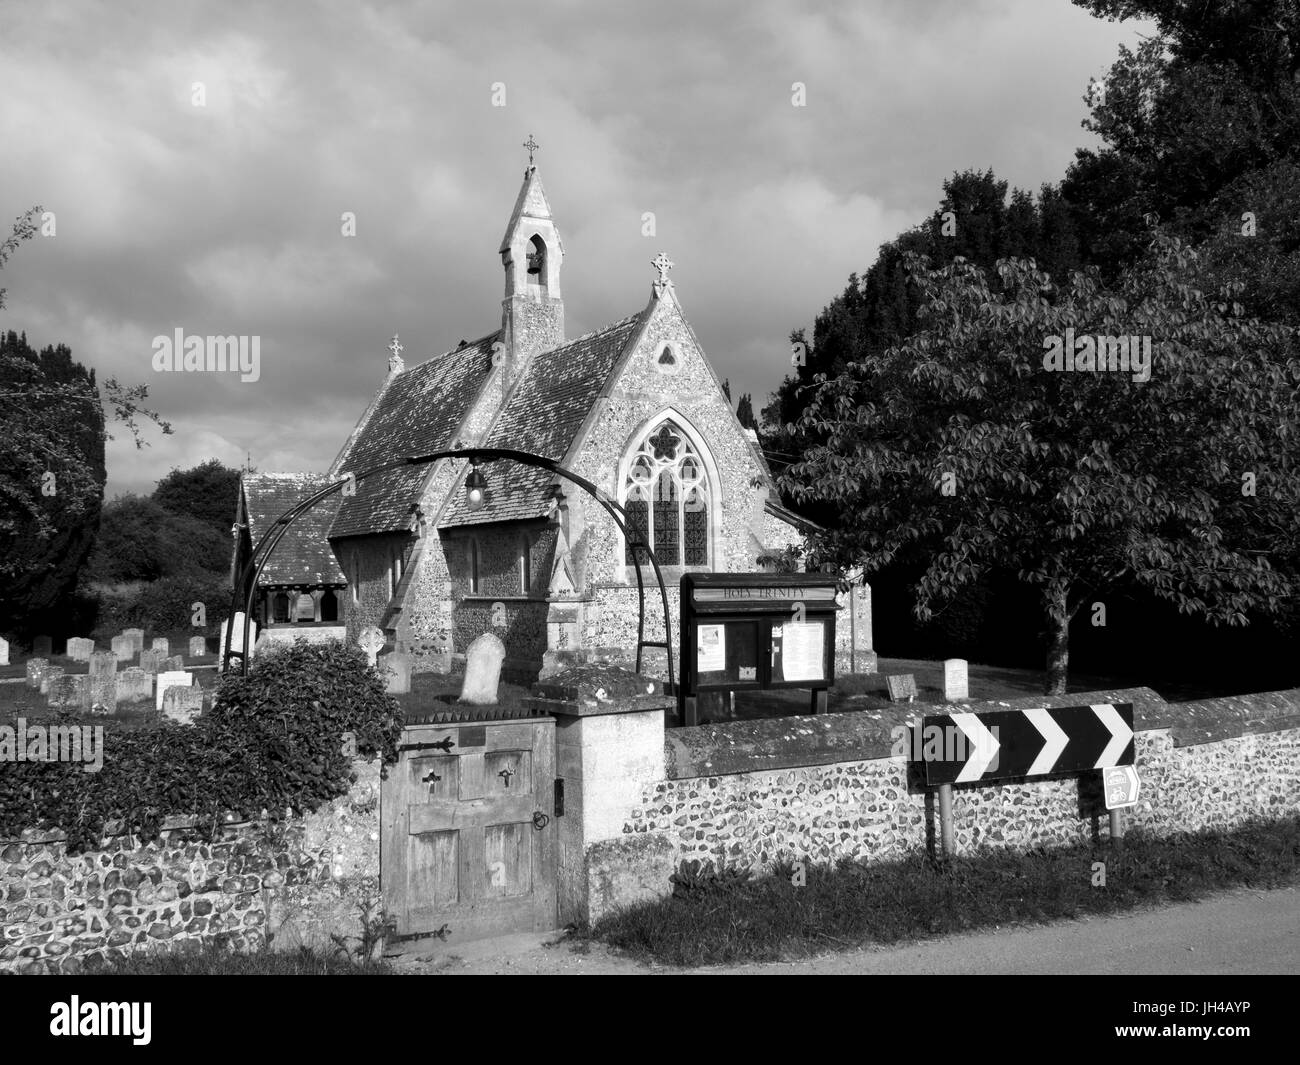 Historic Holy Trinity Church, built in 1857 to the designs of F.H. Powell - Stock Image